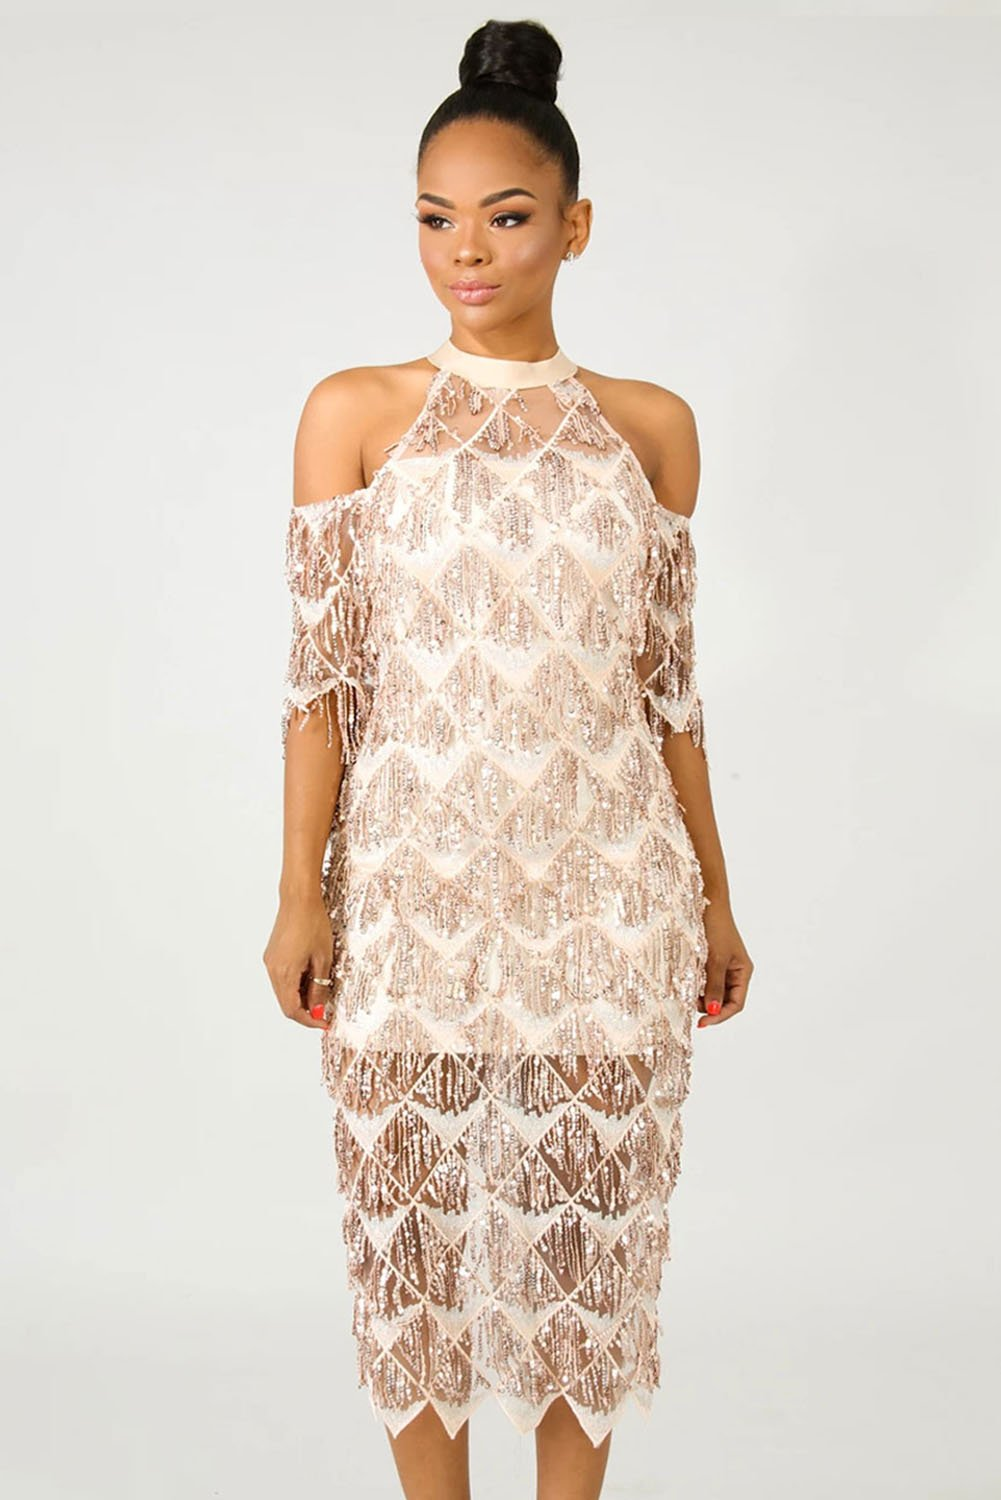 Apricot Fringe Sequin Midi Cocktail Party Dress - Winter Haven Co